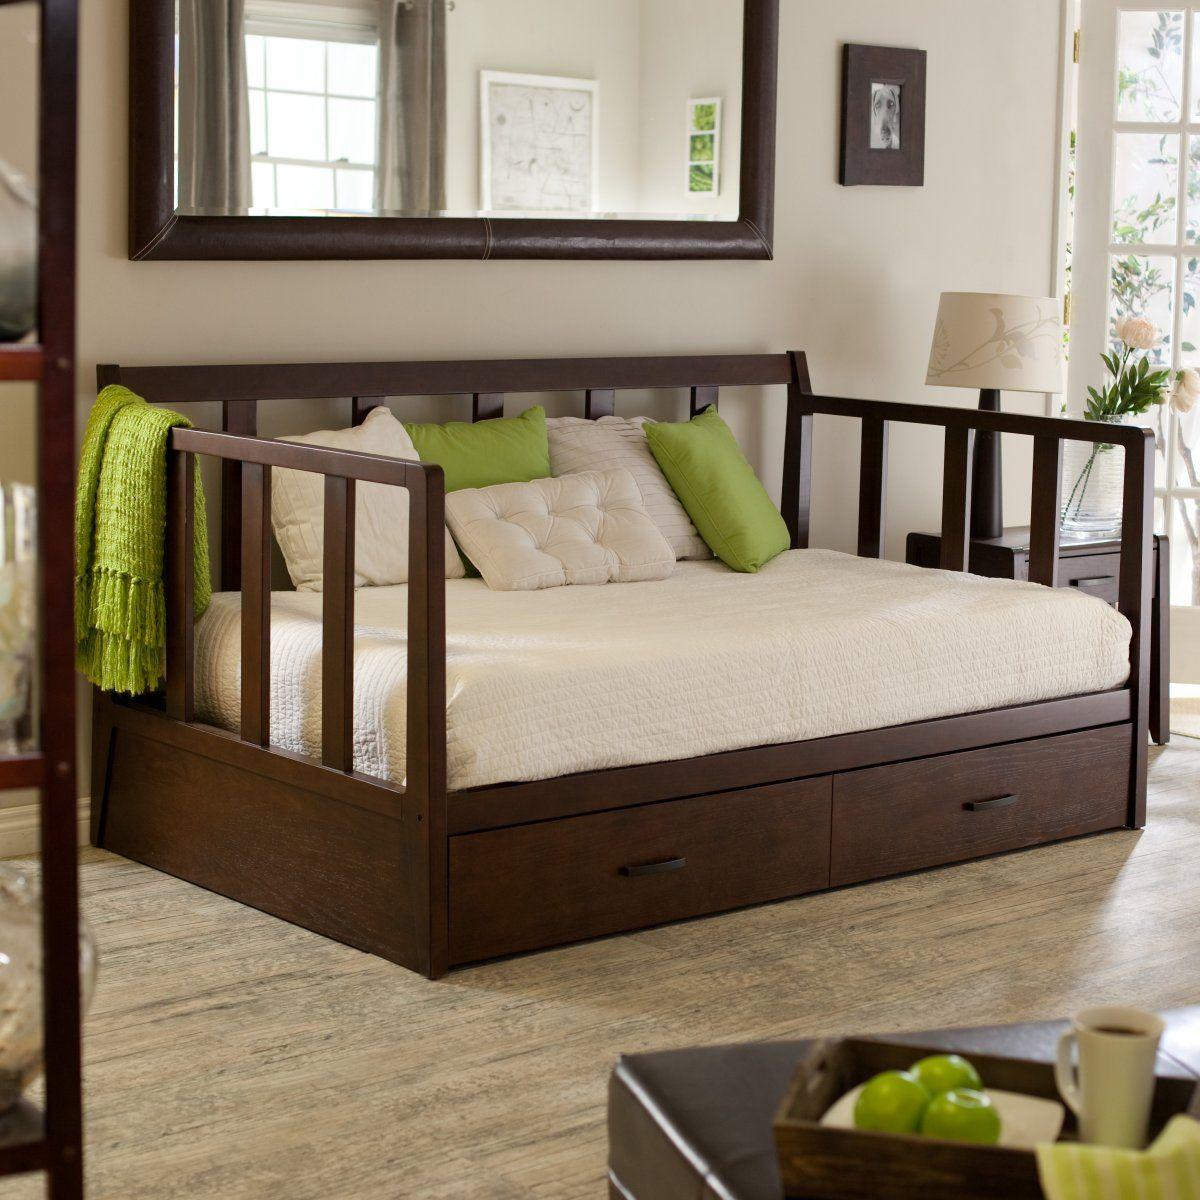 Rustic Daybed with Trundle Wooden Material Ergonomic